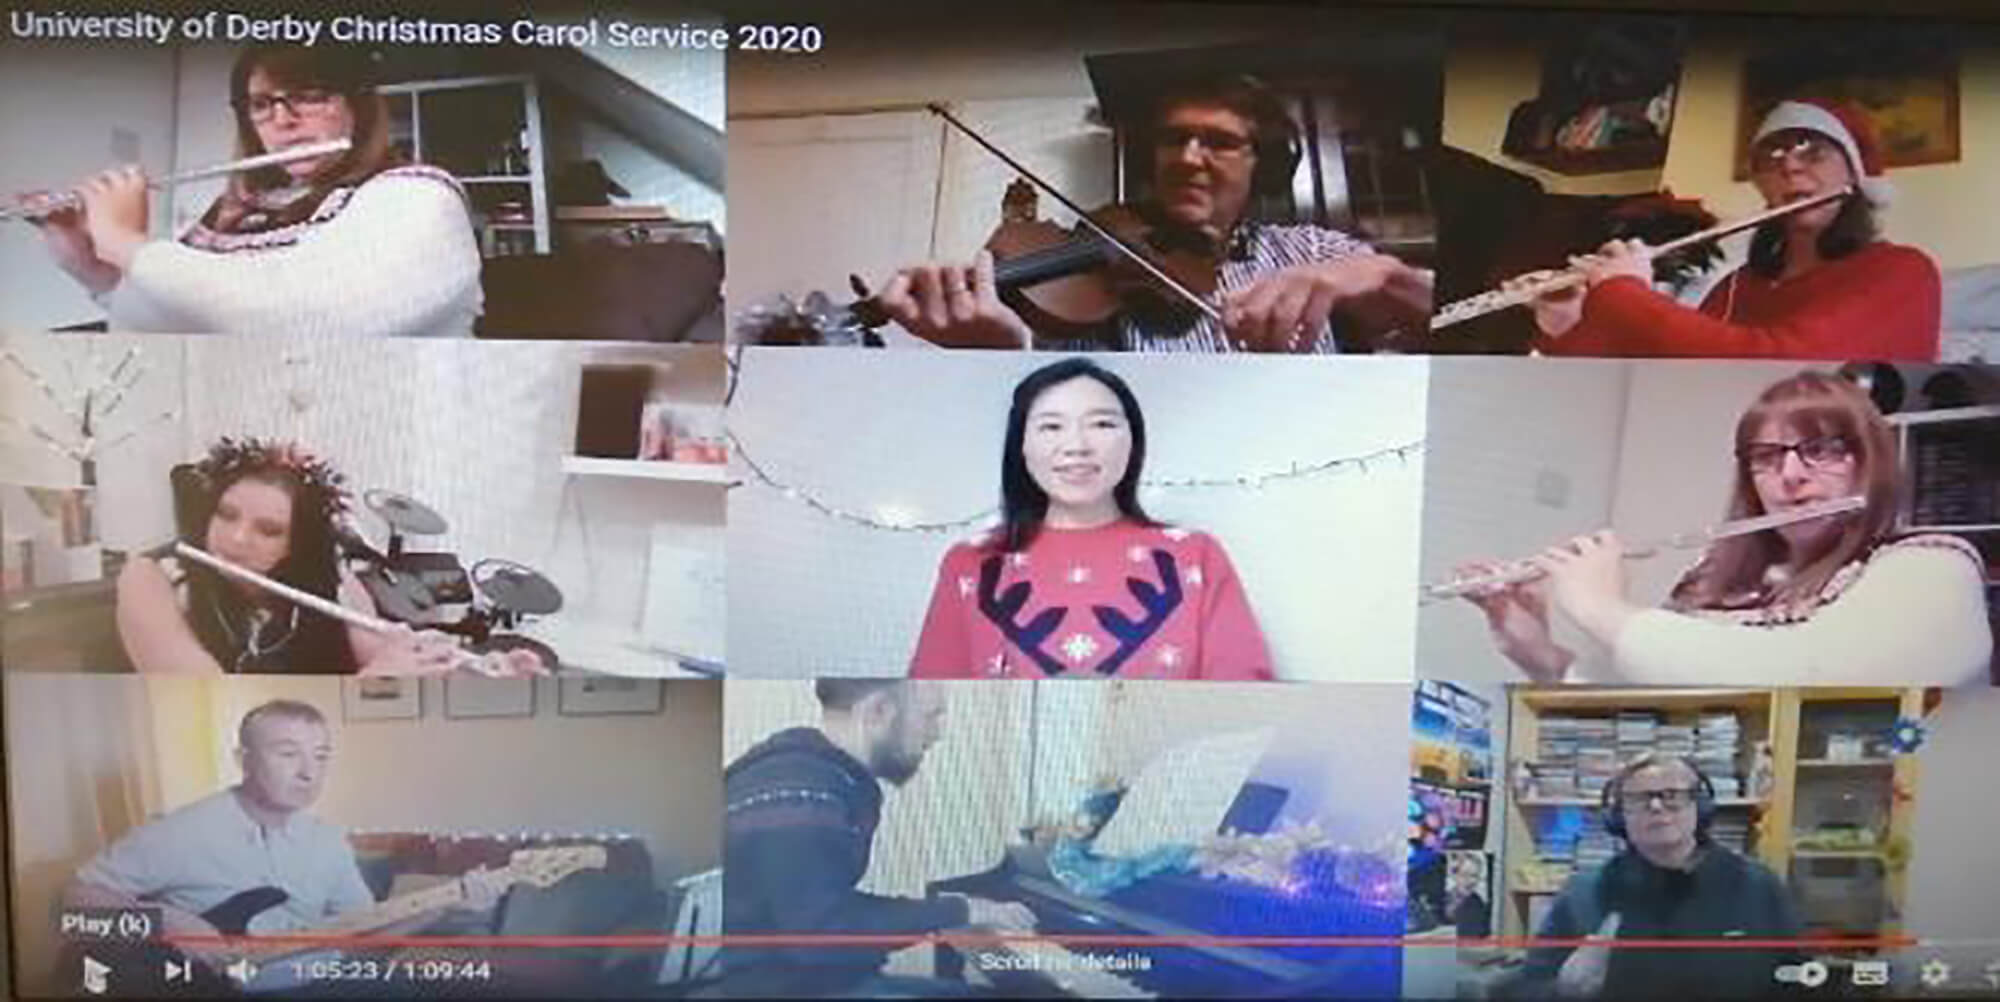 People playing musical instruments (flute, violin, piano) remotely on a video conferencing platform